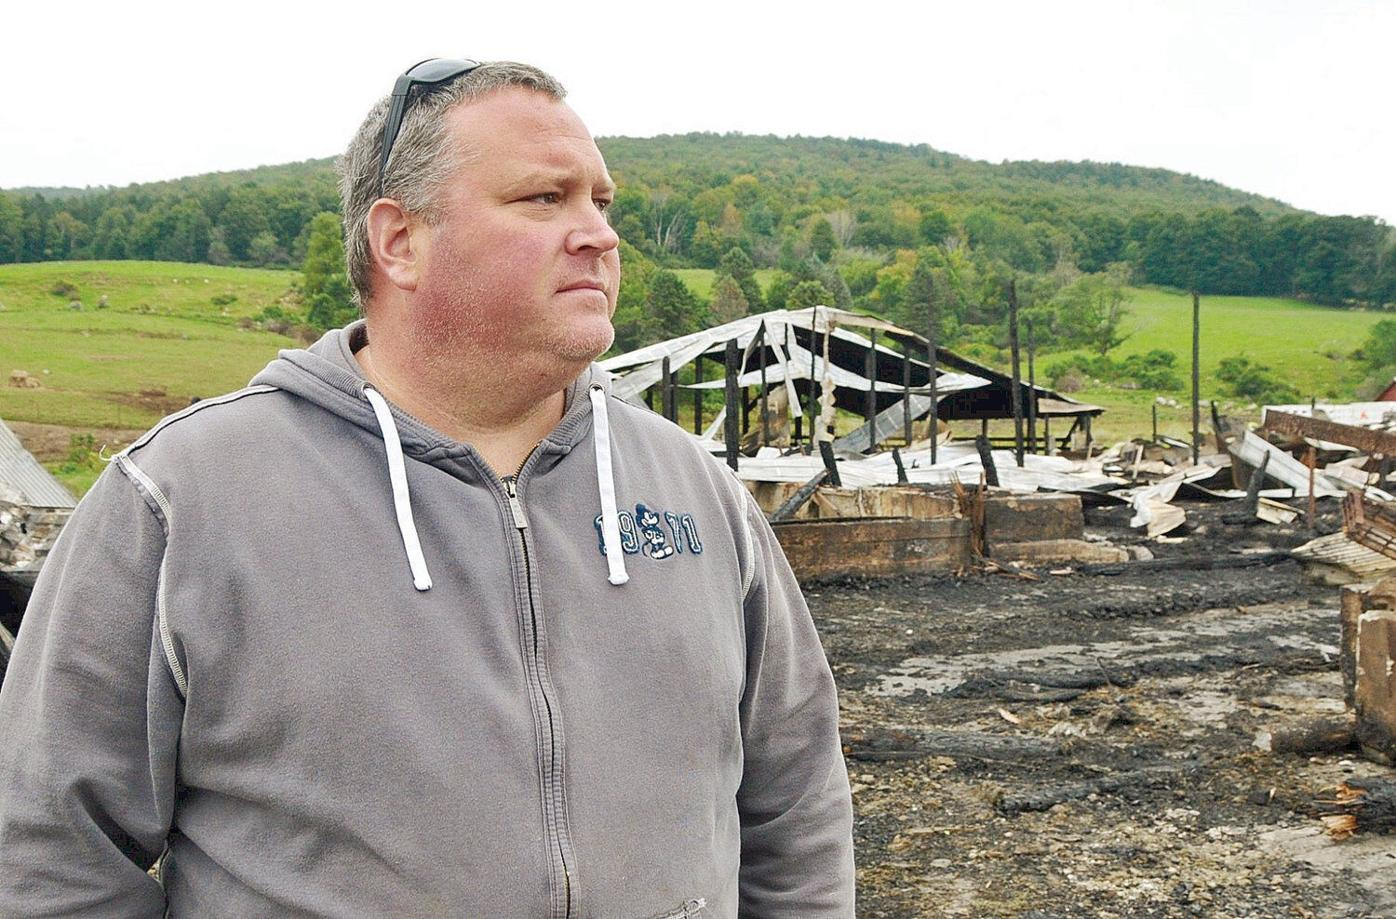 After smoke clears on Adams farm, an uphill battle to stay afloat